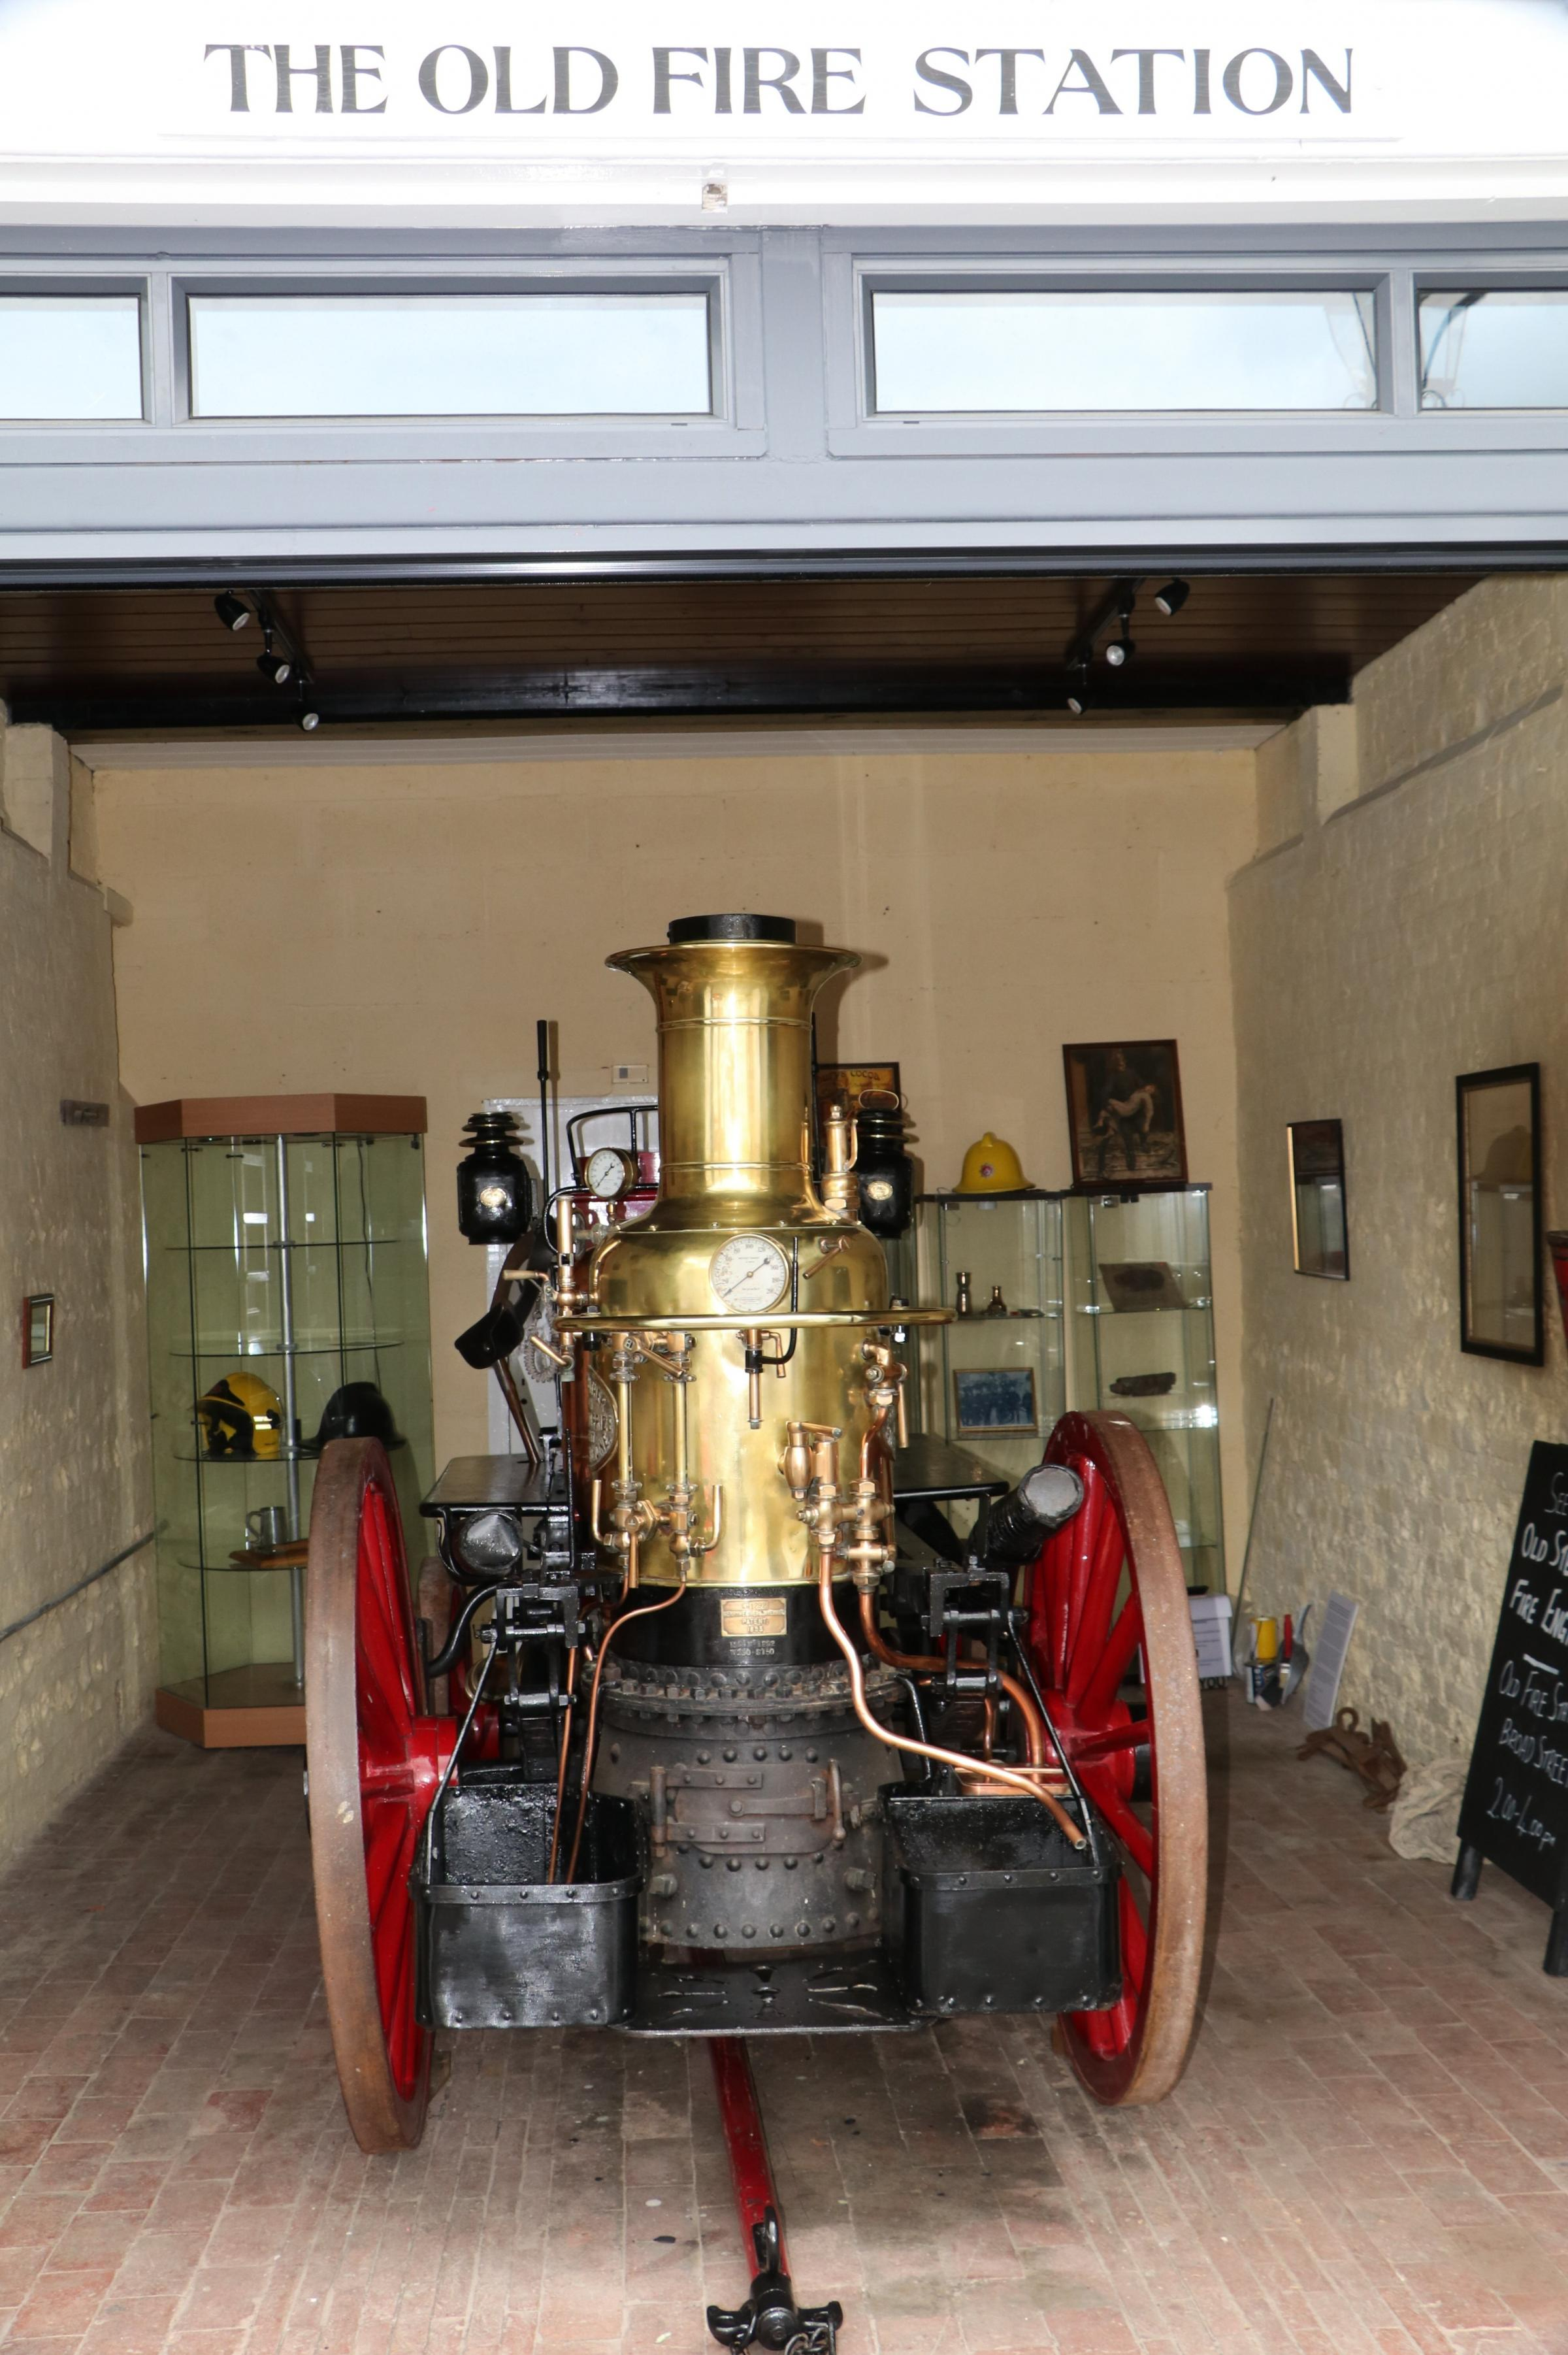 The freshly polished Old Steamer Fire Engine at the Old Fire Station, Broad Street, Alresford